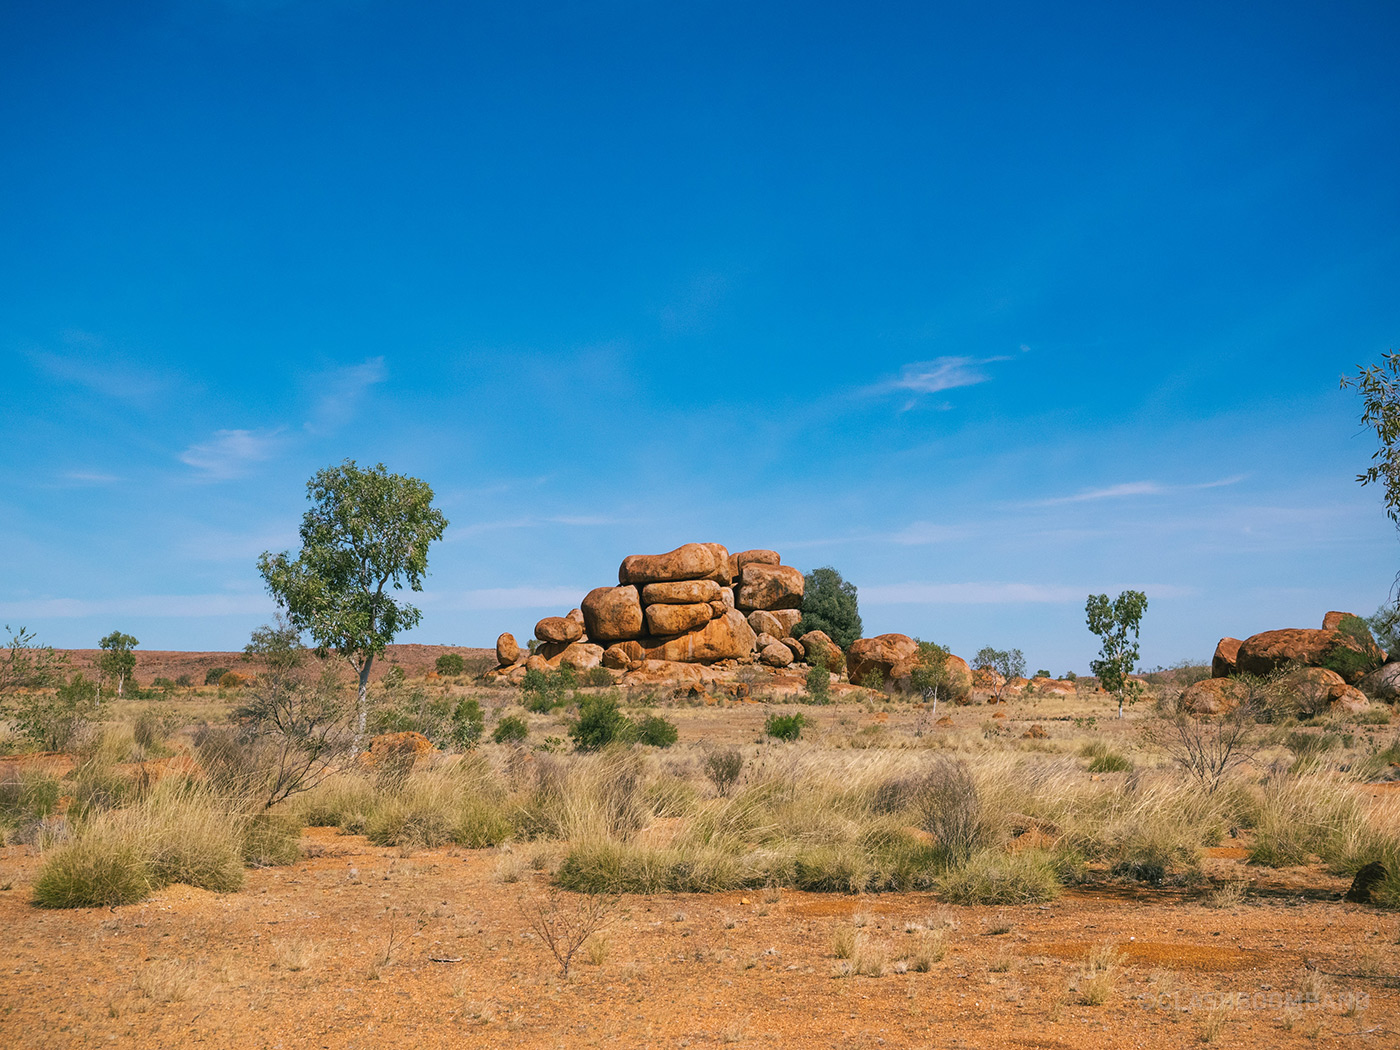 NT Australia - Karlu Karlu - Neatly stacked boulders